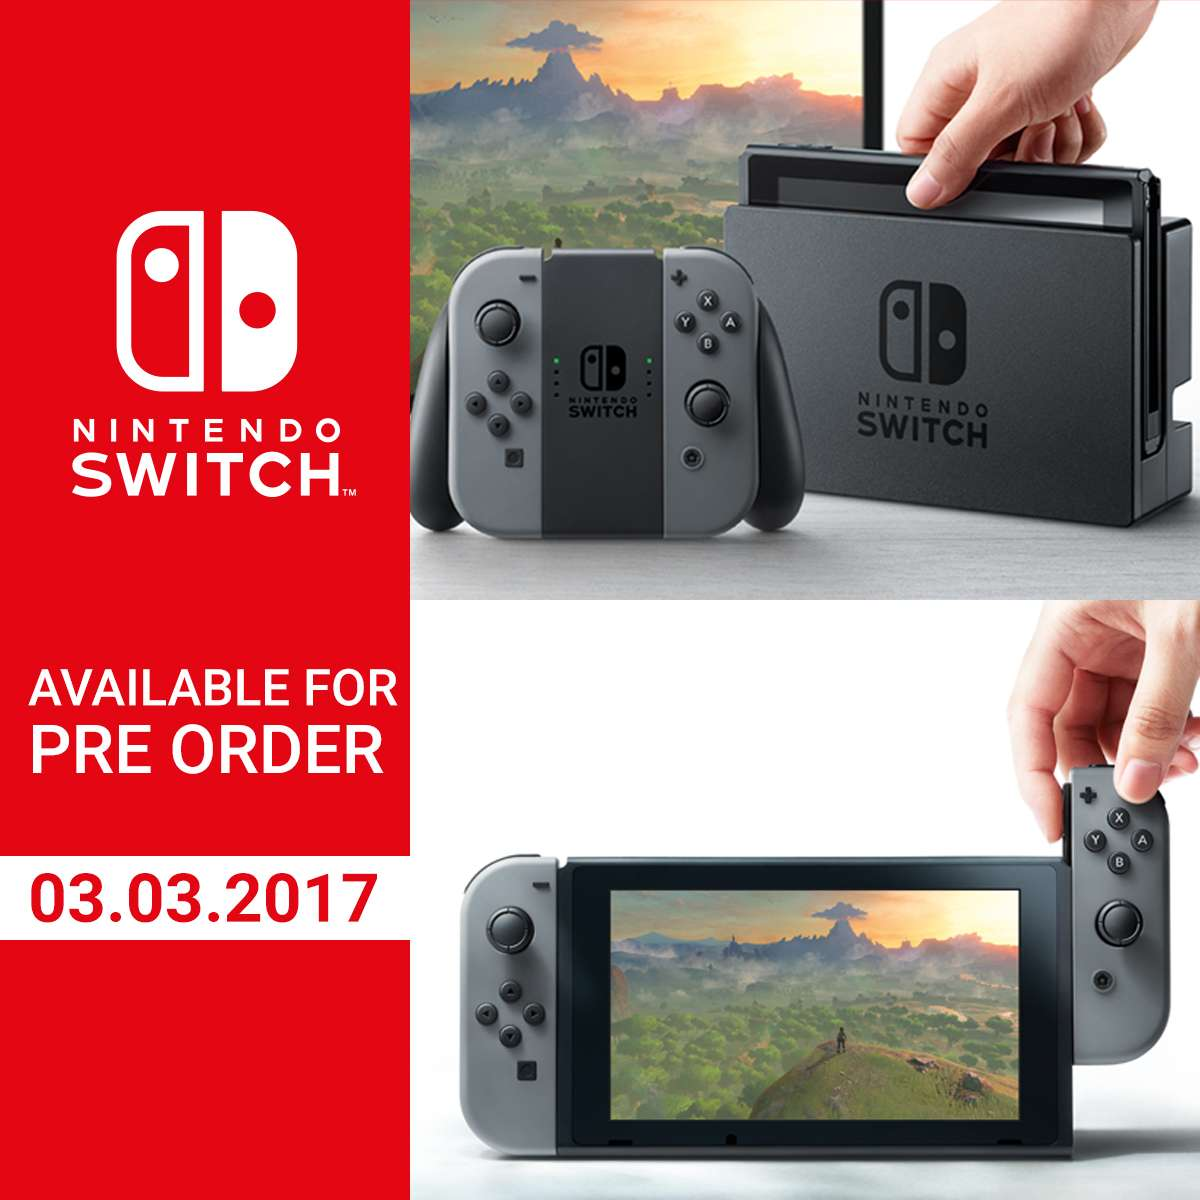 Nintendo switch preorder